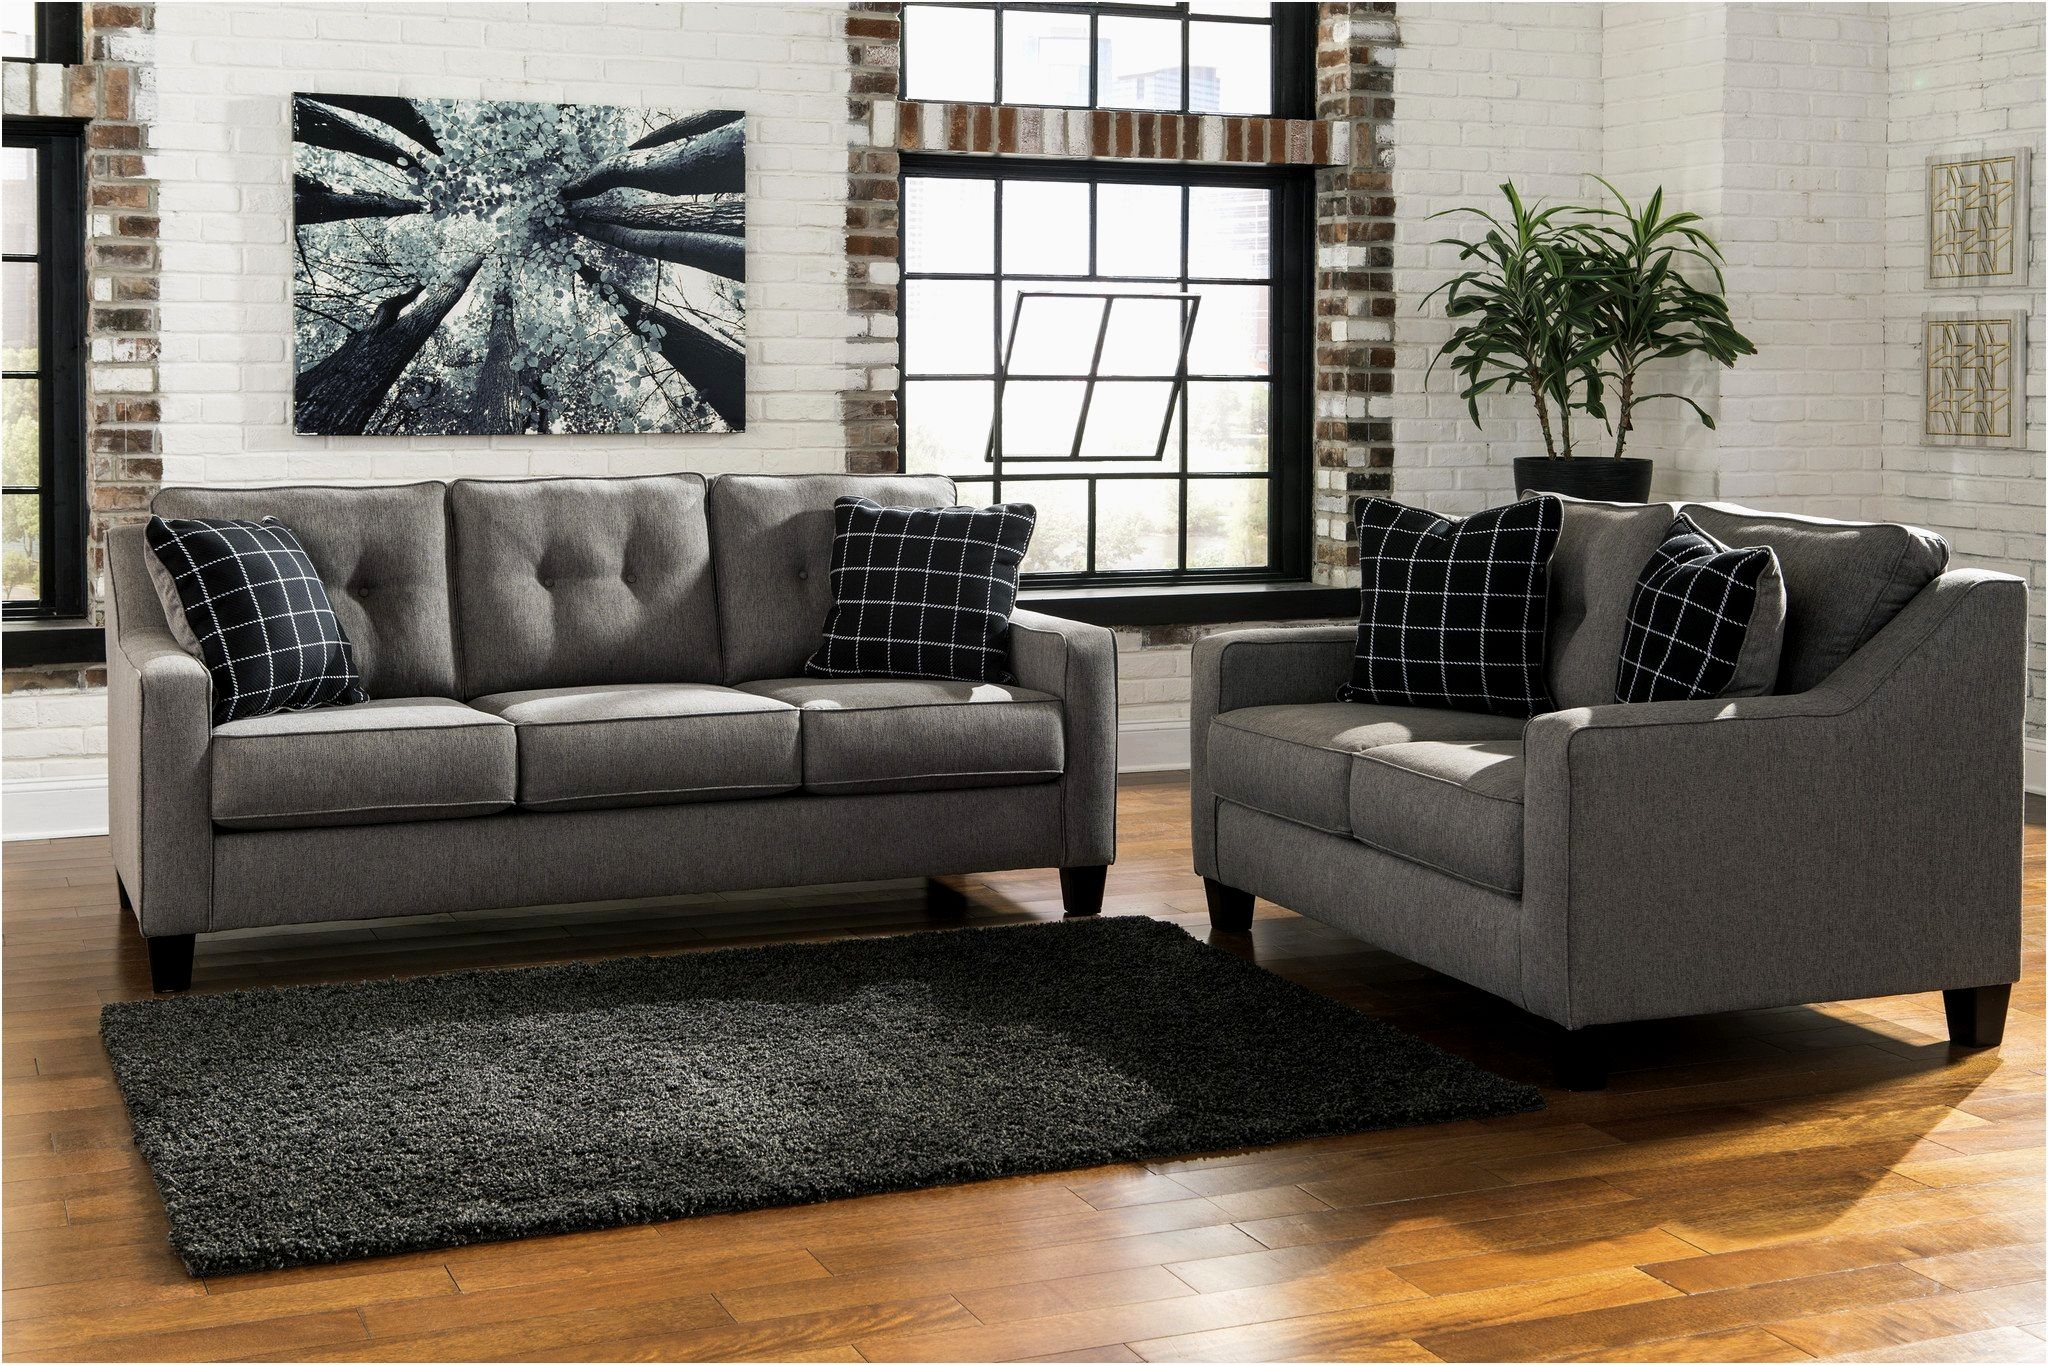 modern simmons flannel charcoal sofa picture-Beautiful Simmons Flannel Charcoal sofa Concept